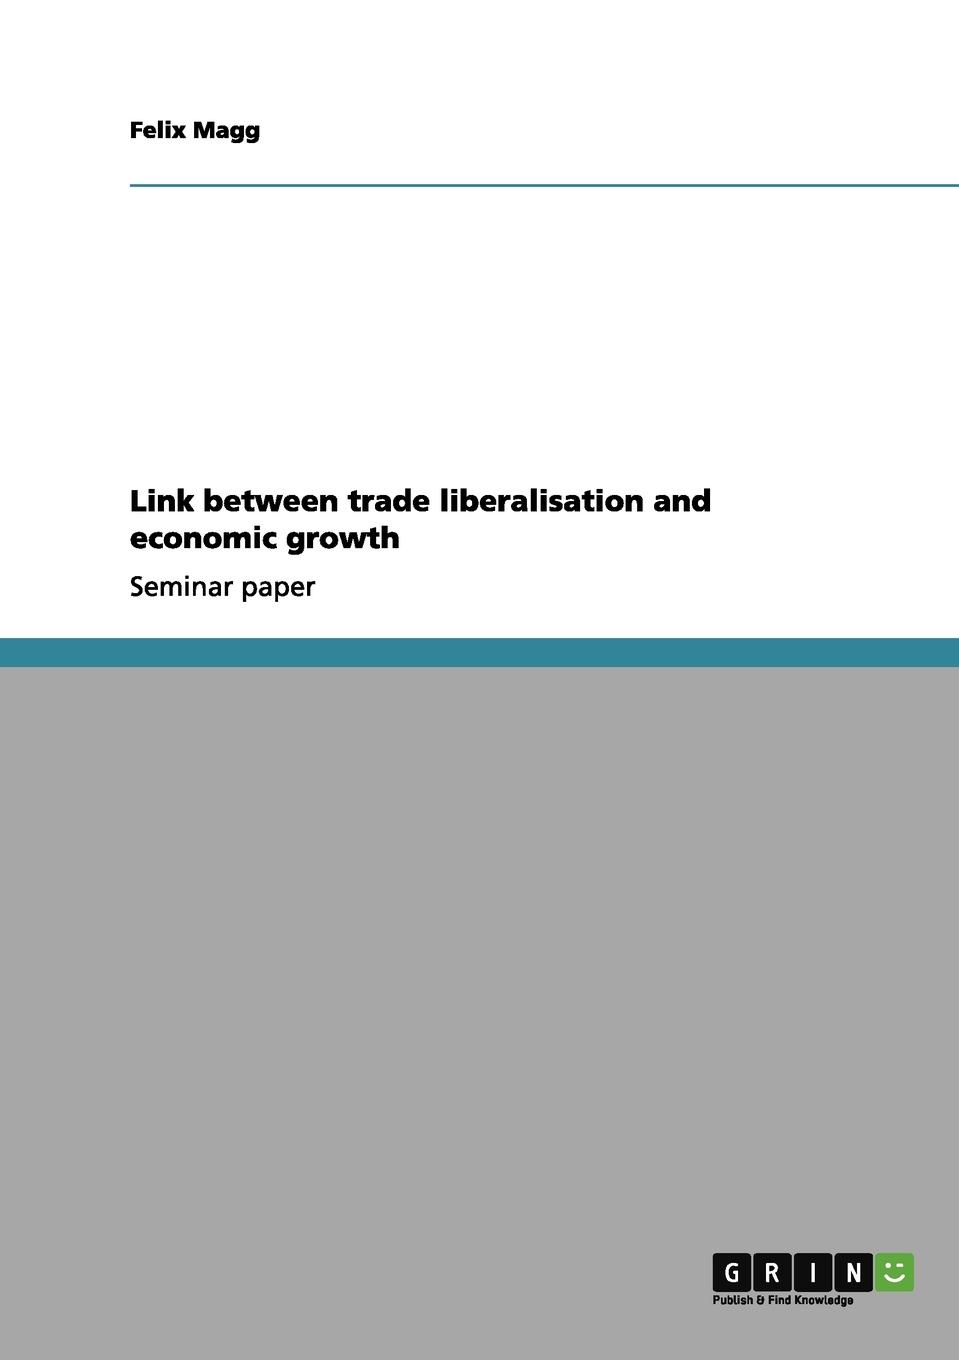 Felix Magg Link between trade liberalisation and economic growth vishaal kishore ricardo s gauntlet economic fiction and the flawed case for free trade